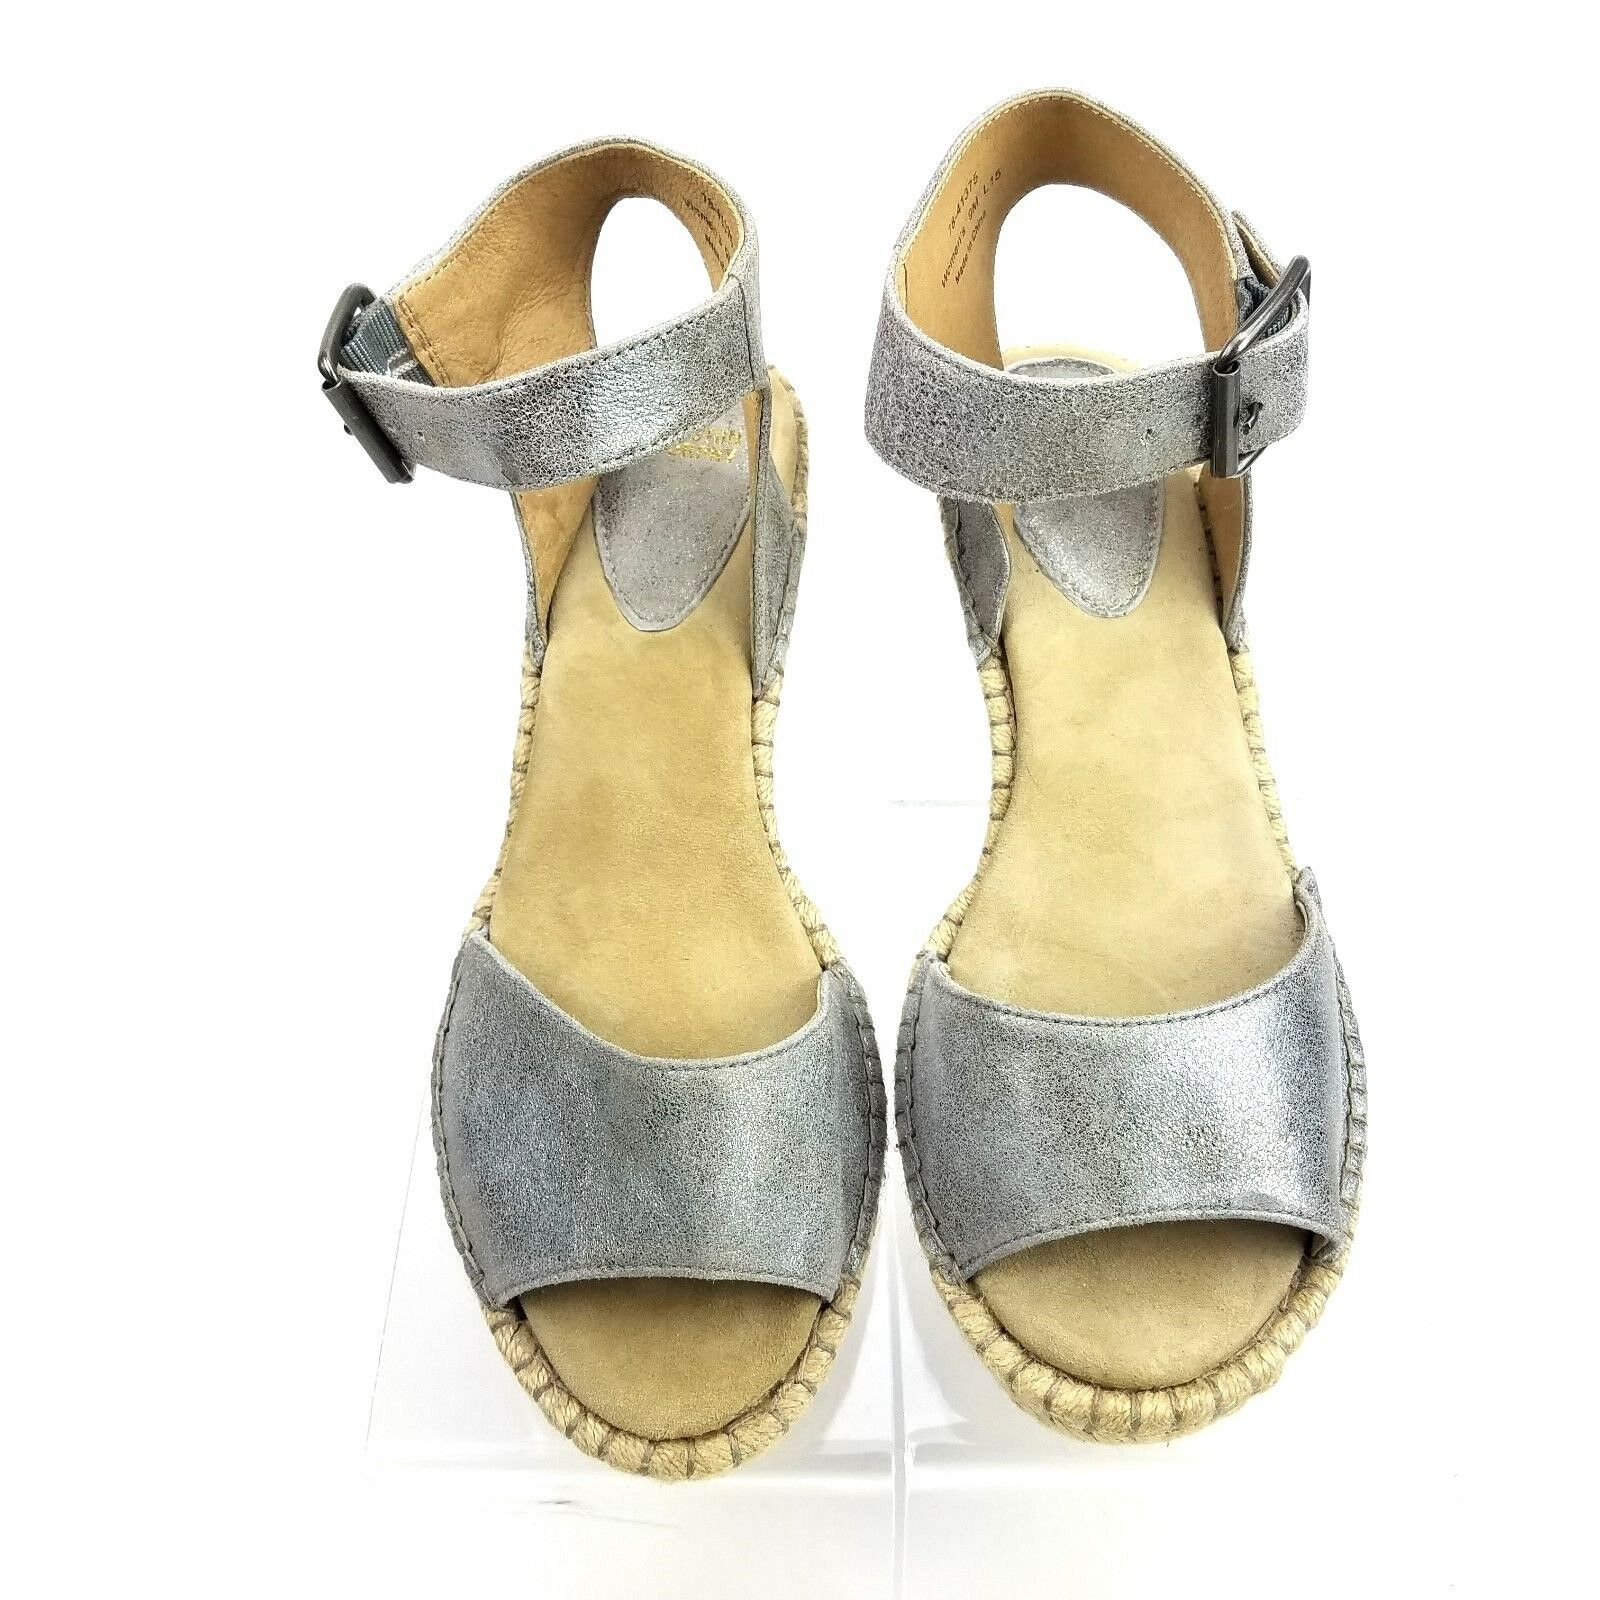 Johnston Murphy 9M Metallic Silve Leather Ankle Strap Espadrille Wedge Sandals